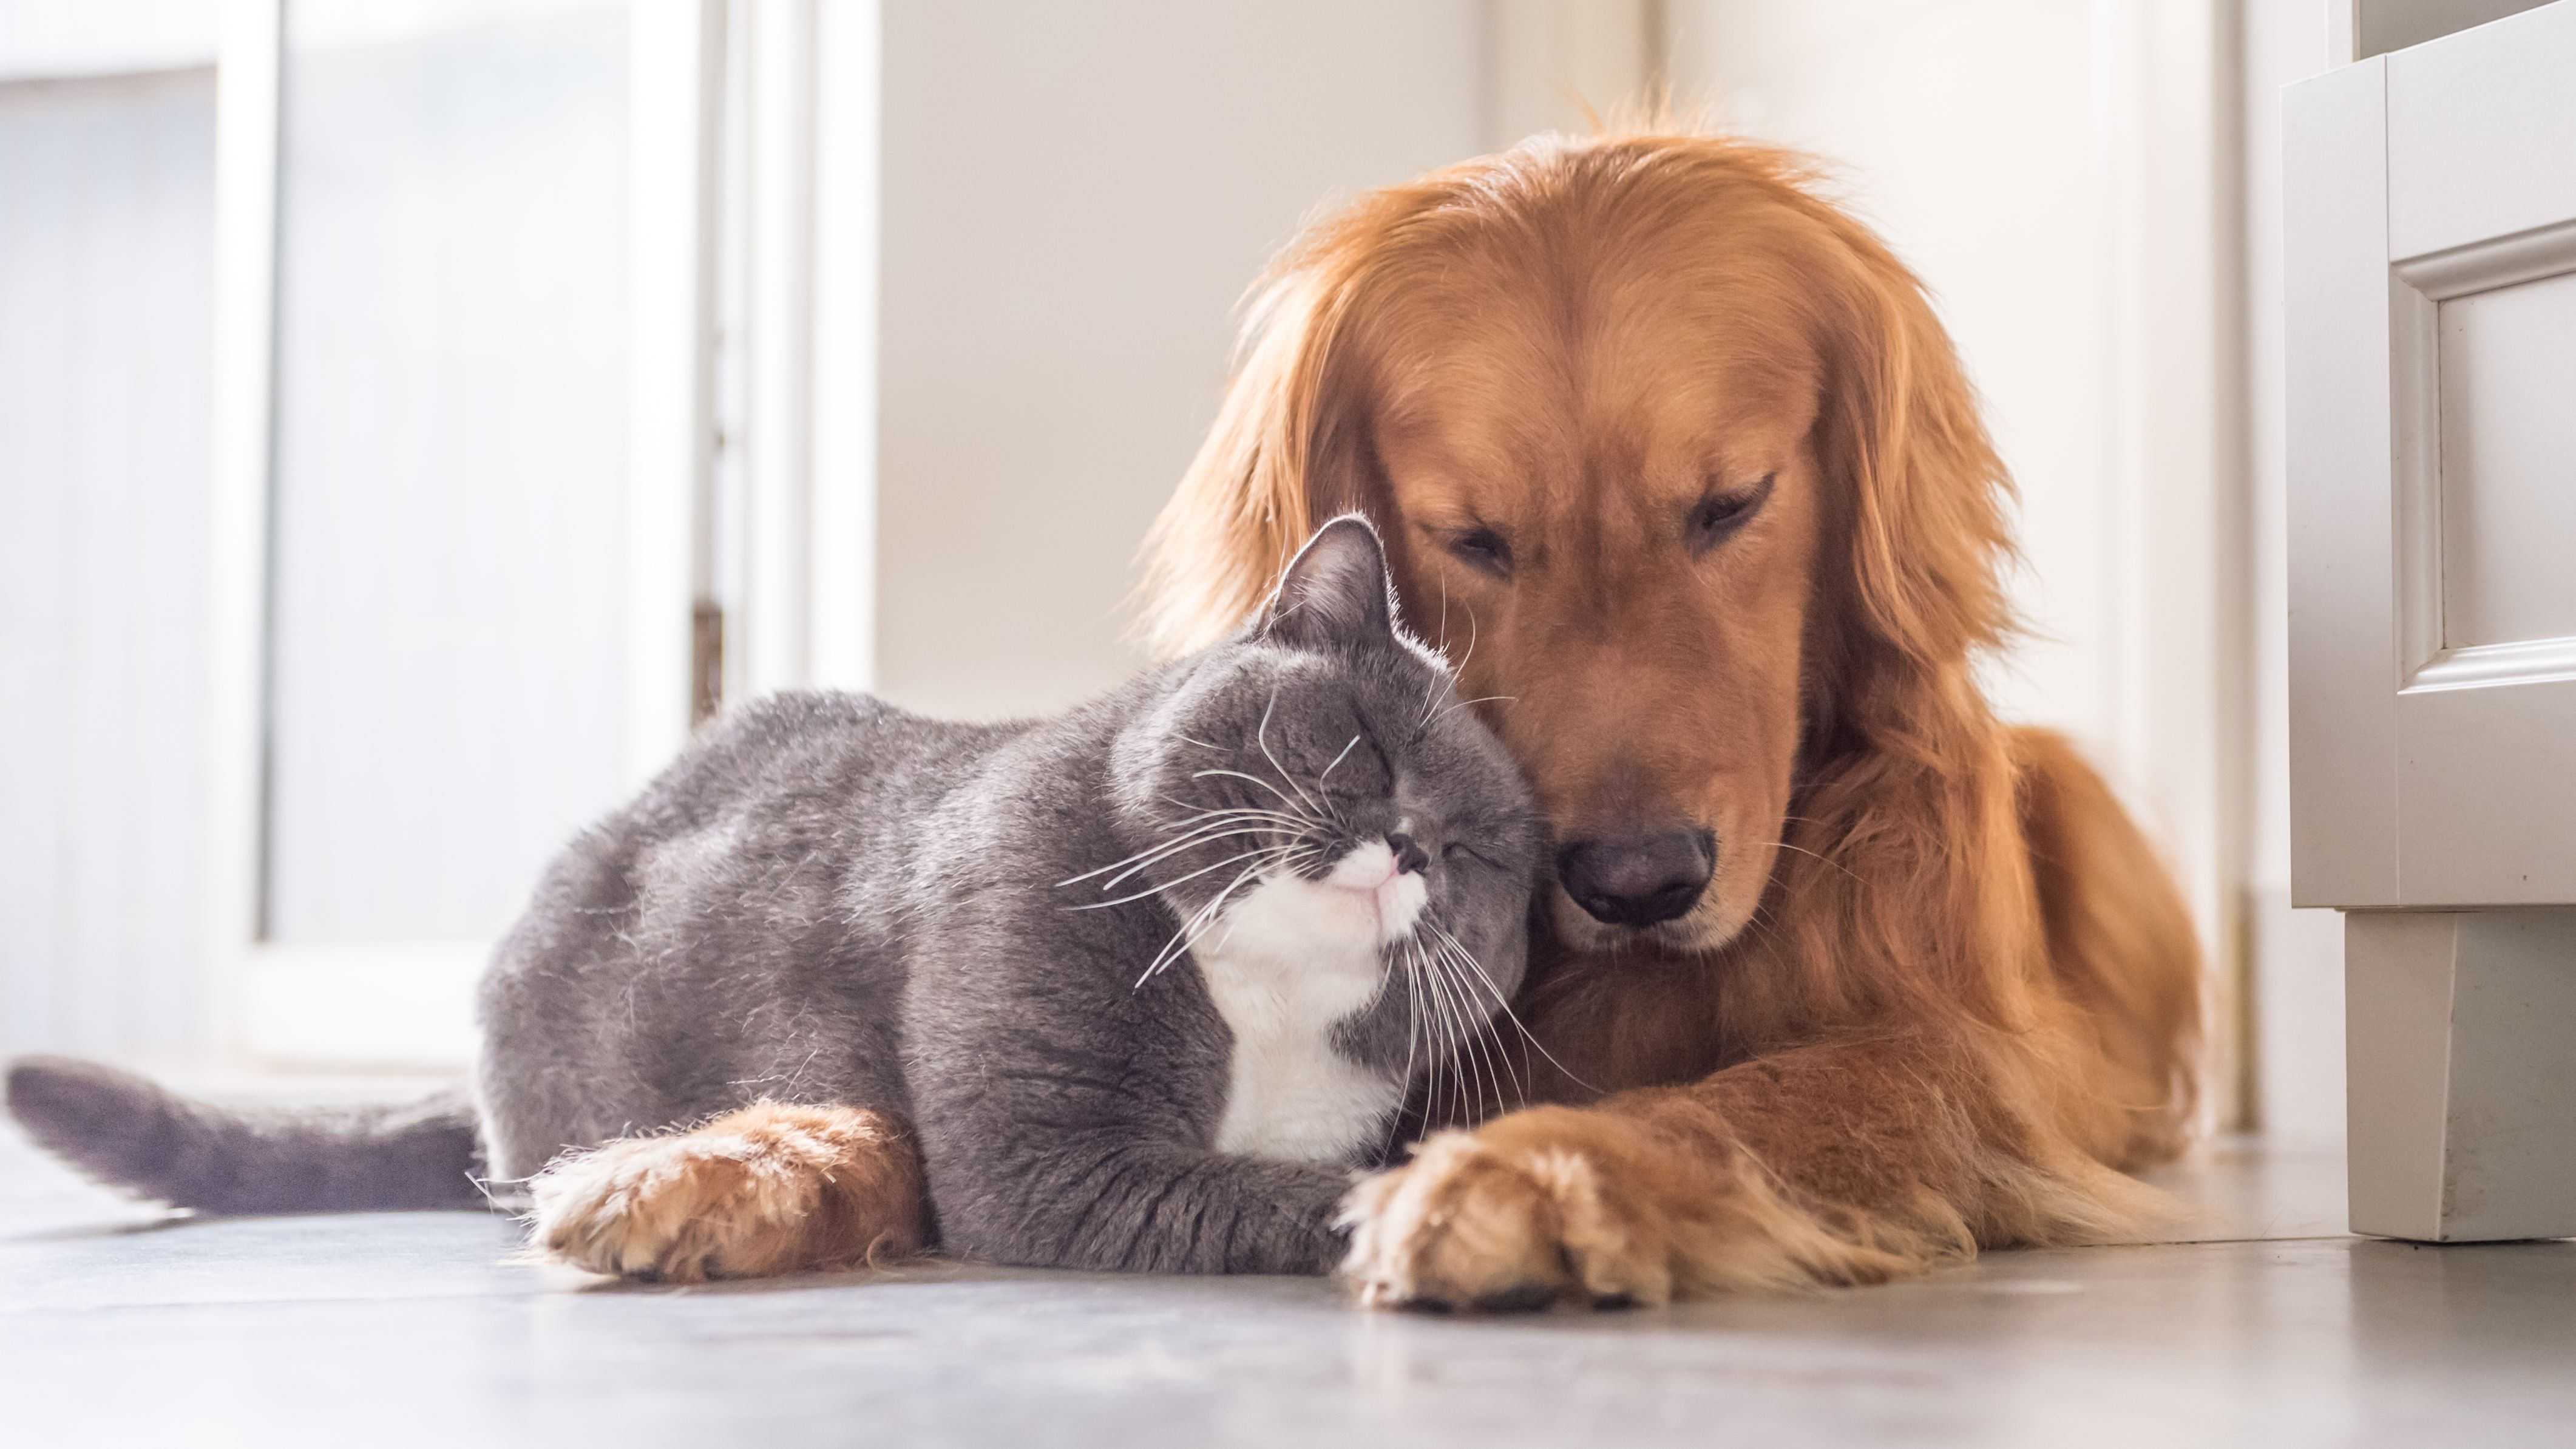 It Turns Out Cats And Dogs Get Along Just Fine